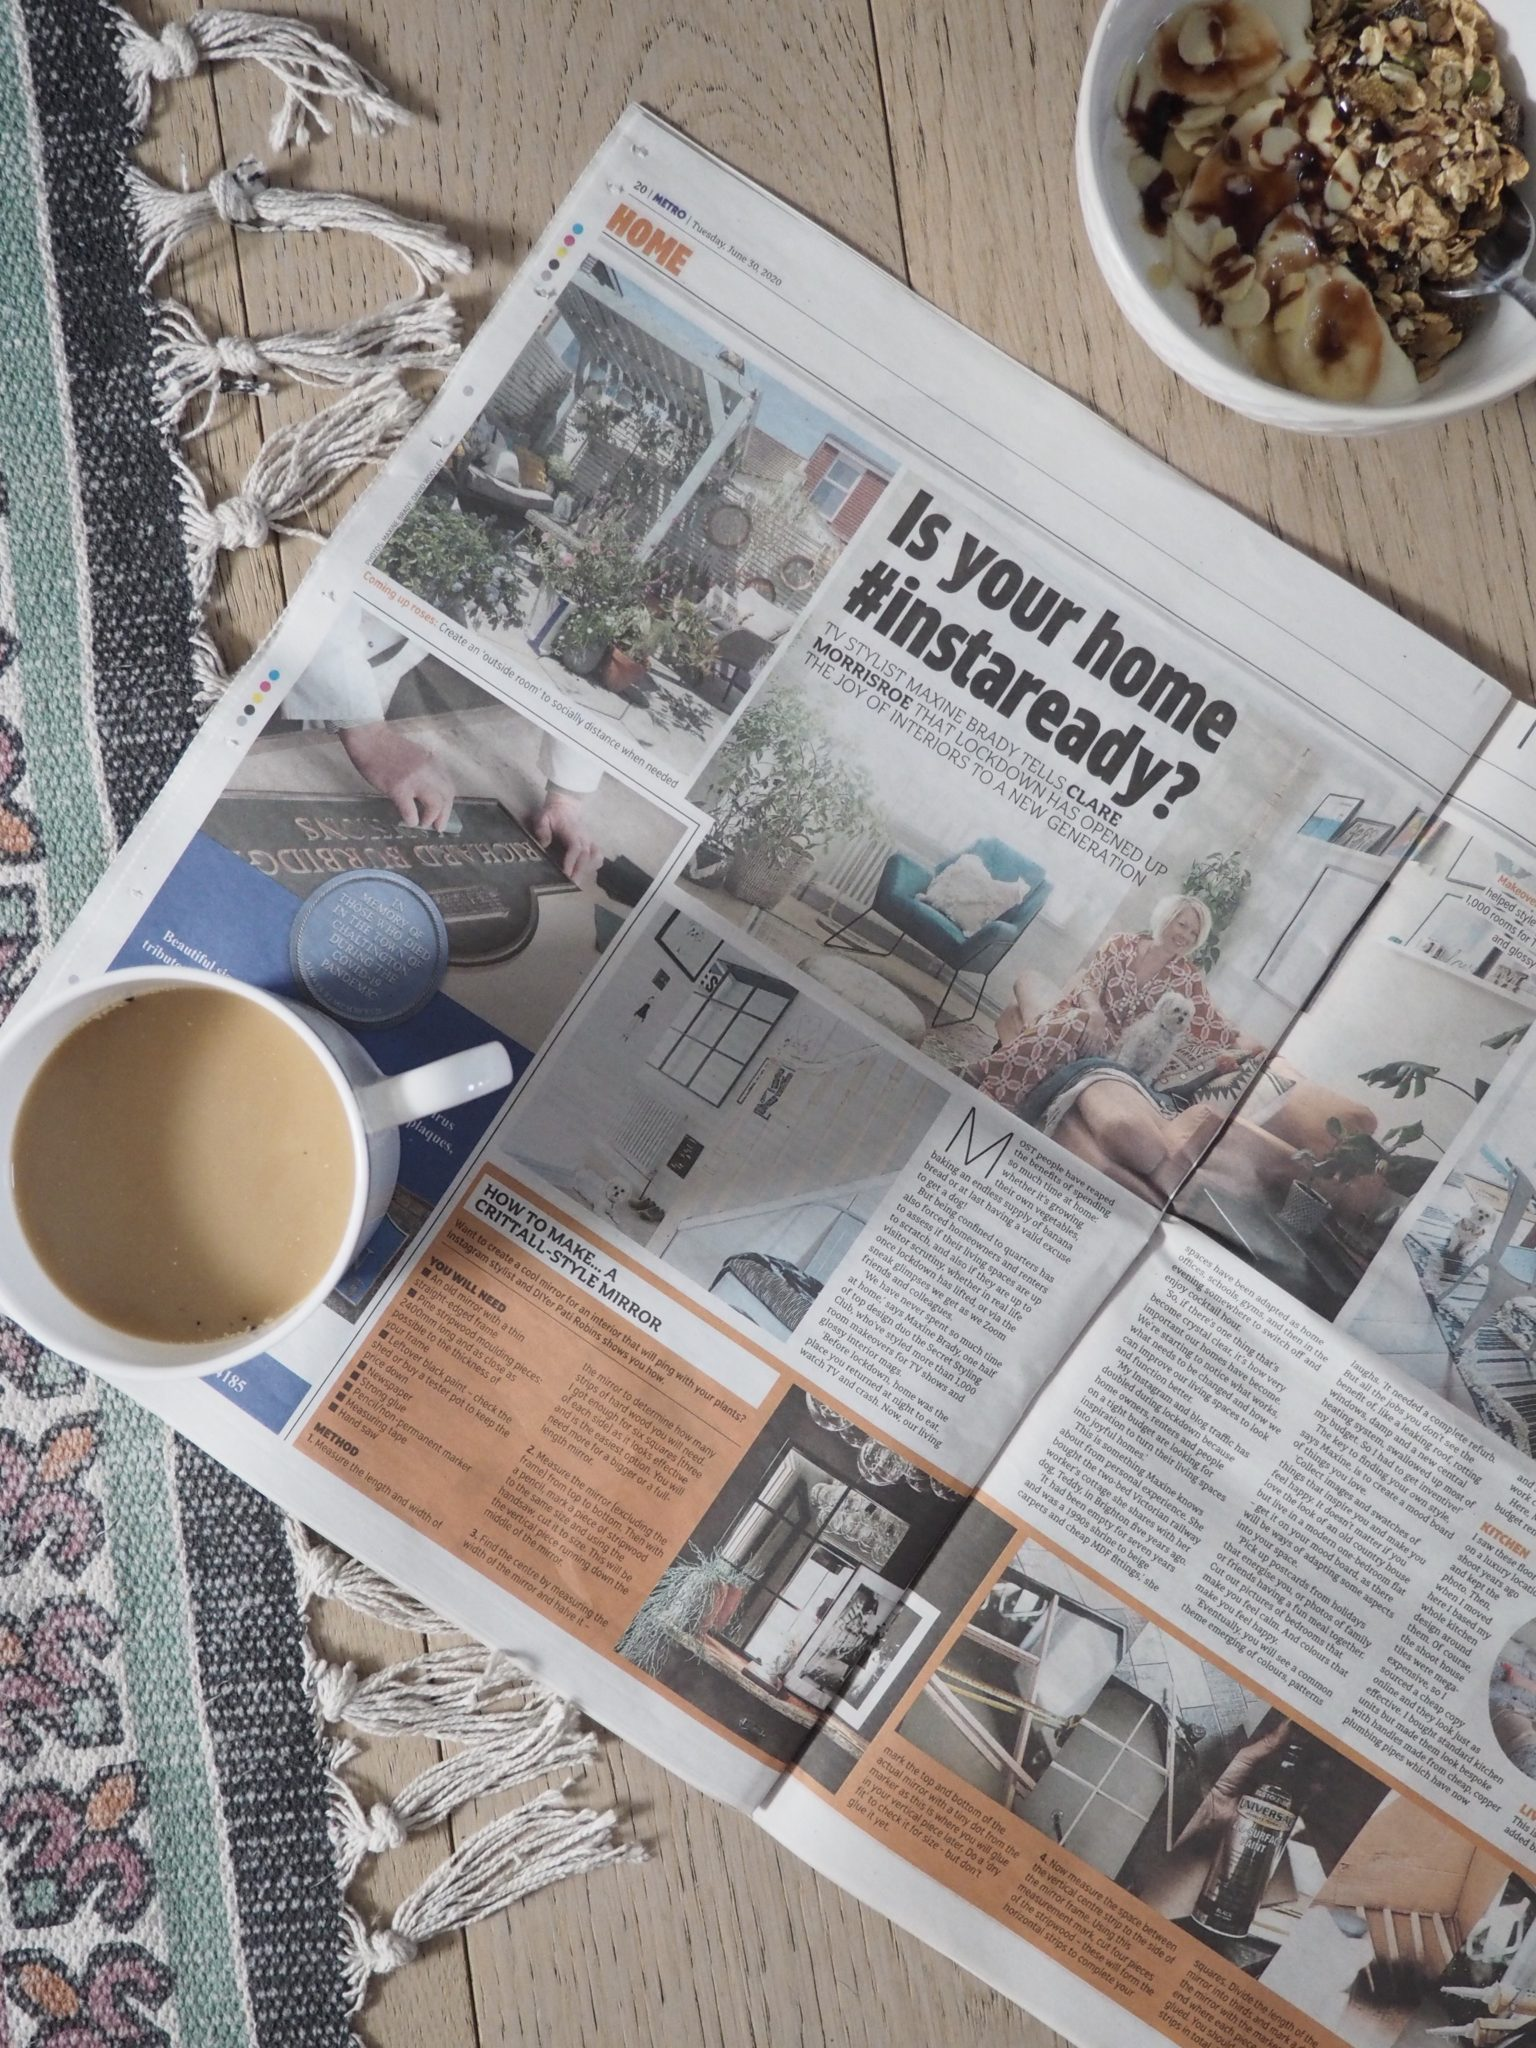 My Home Tour in the Metro Newspaper